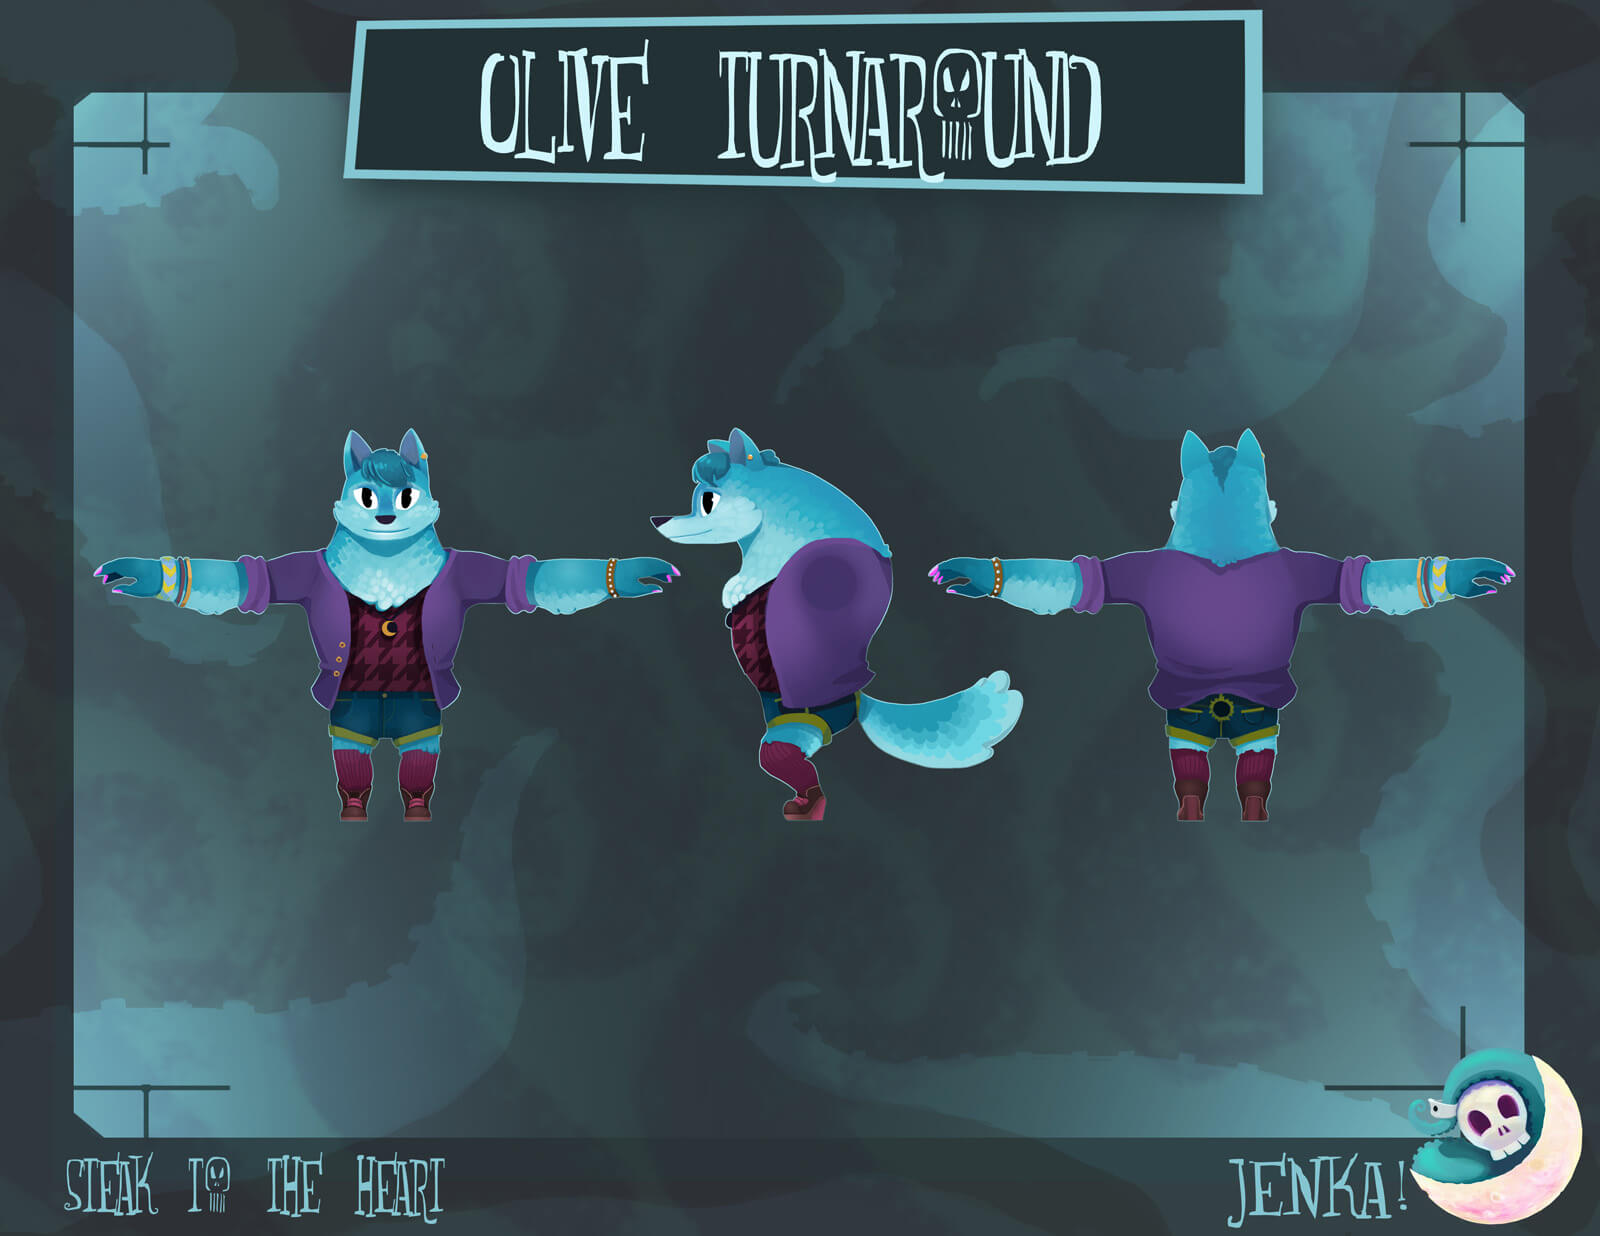 Three final designs of a blue werewolf from the film Steak to the Heart from the front, side, and back